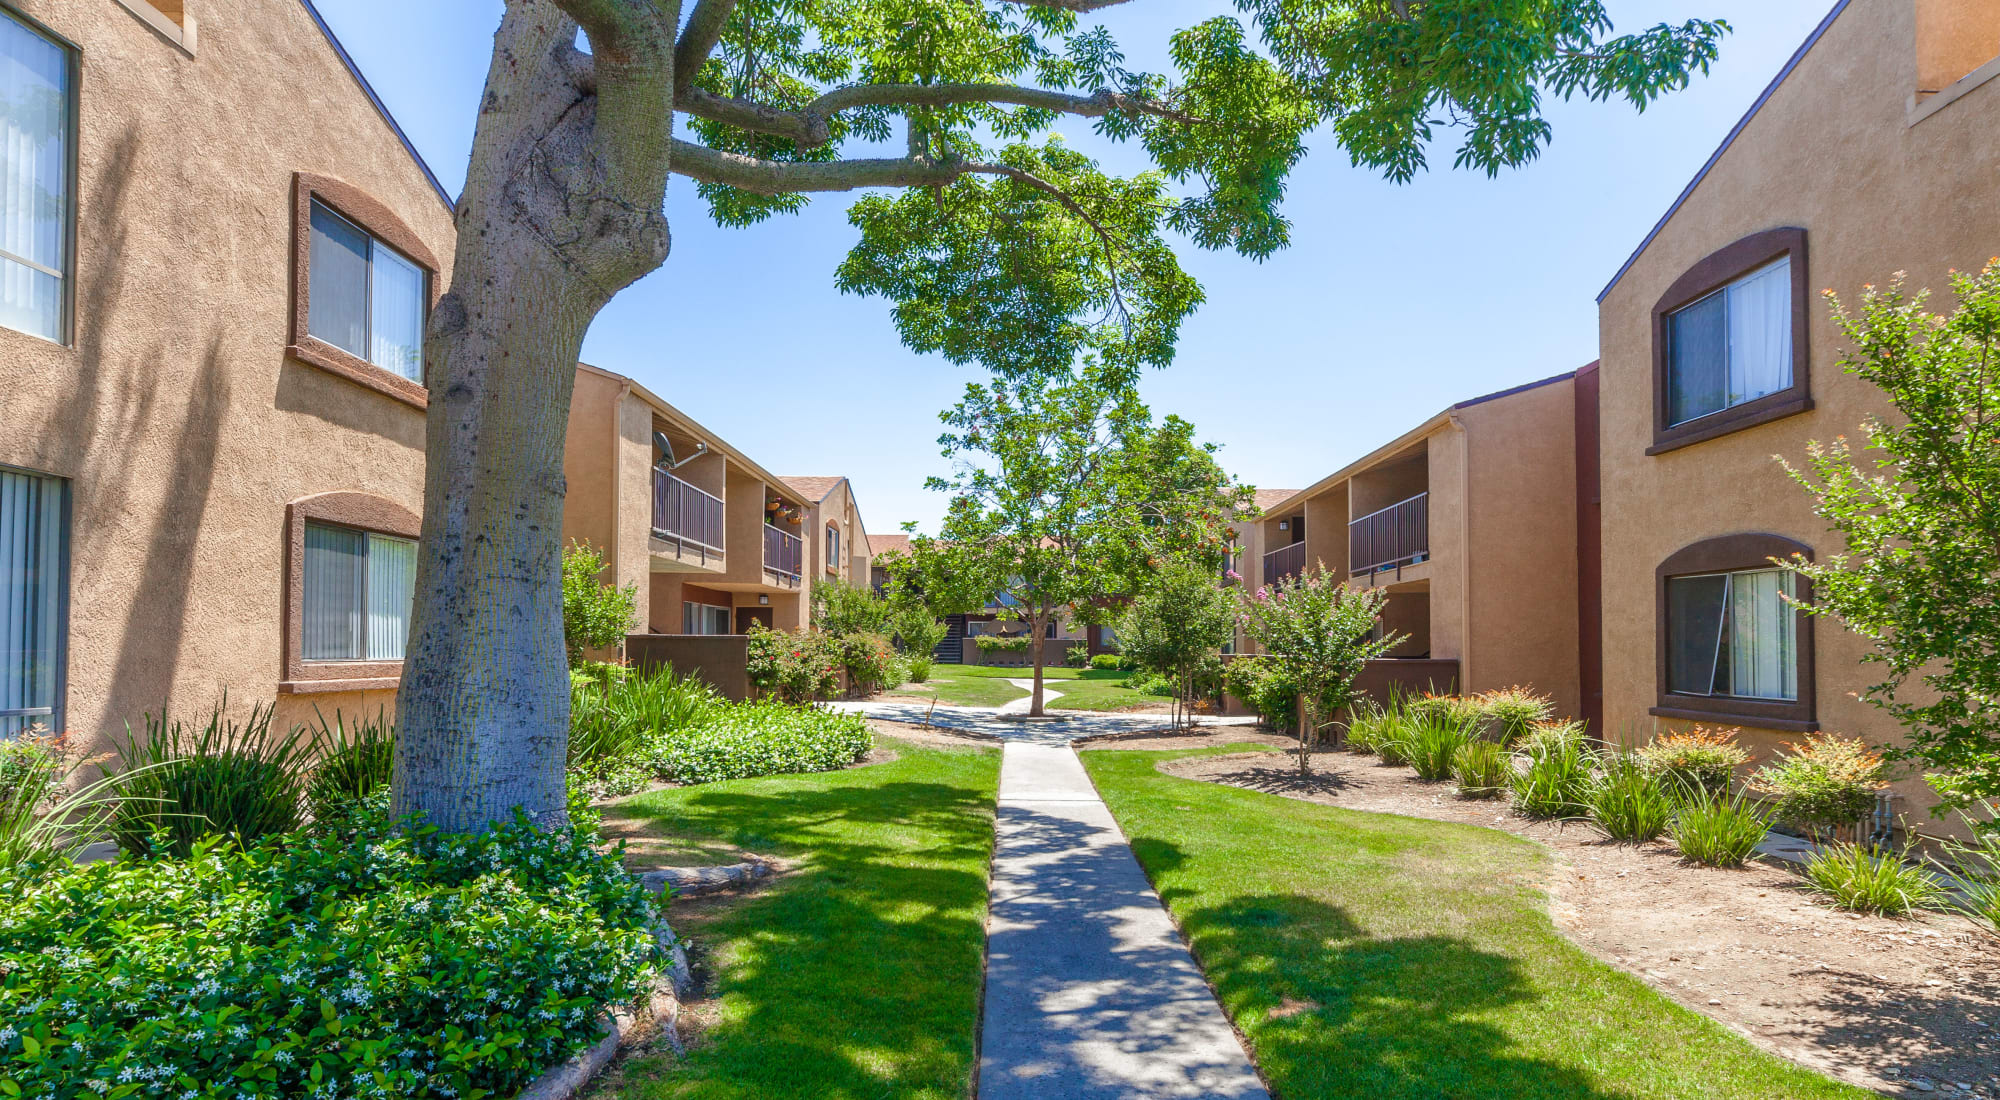 Privacy Policy at West Fifth Apartments in Ontario, California